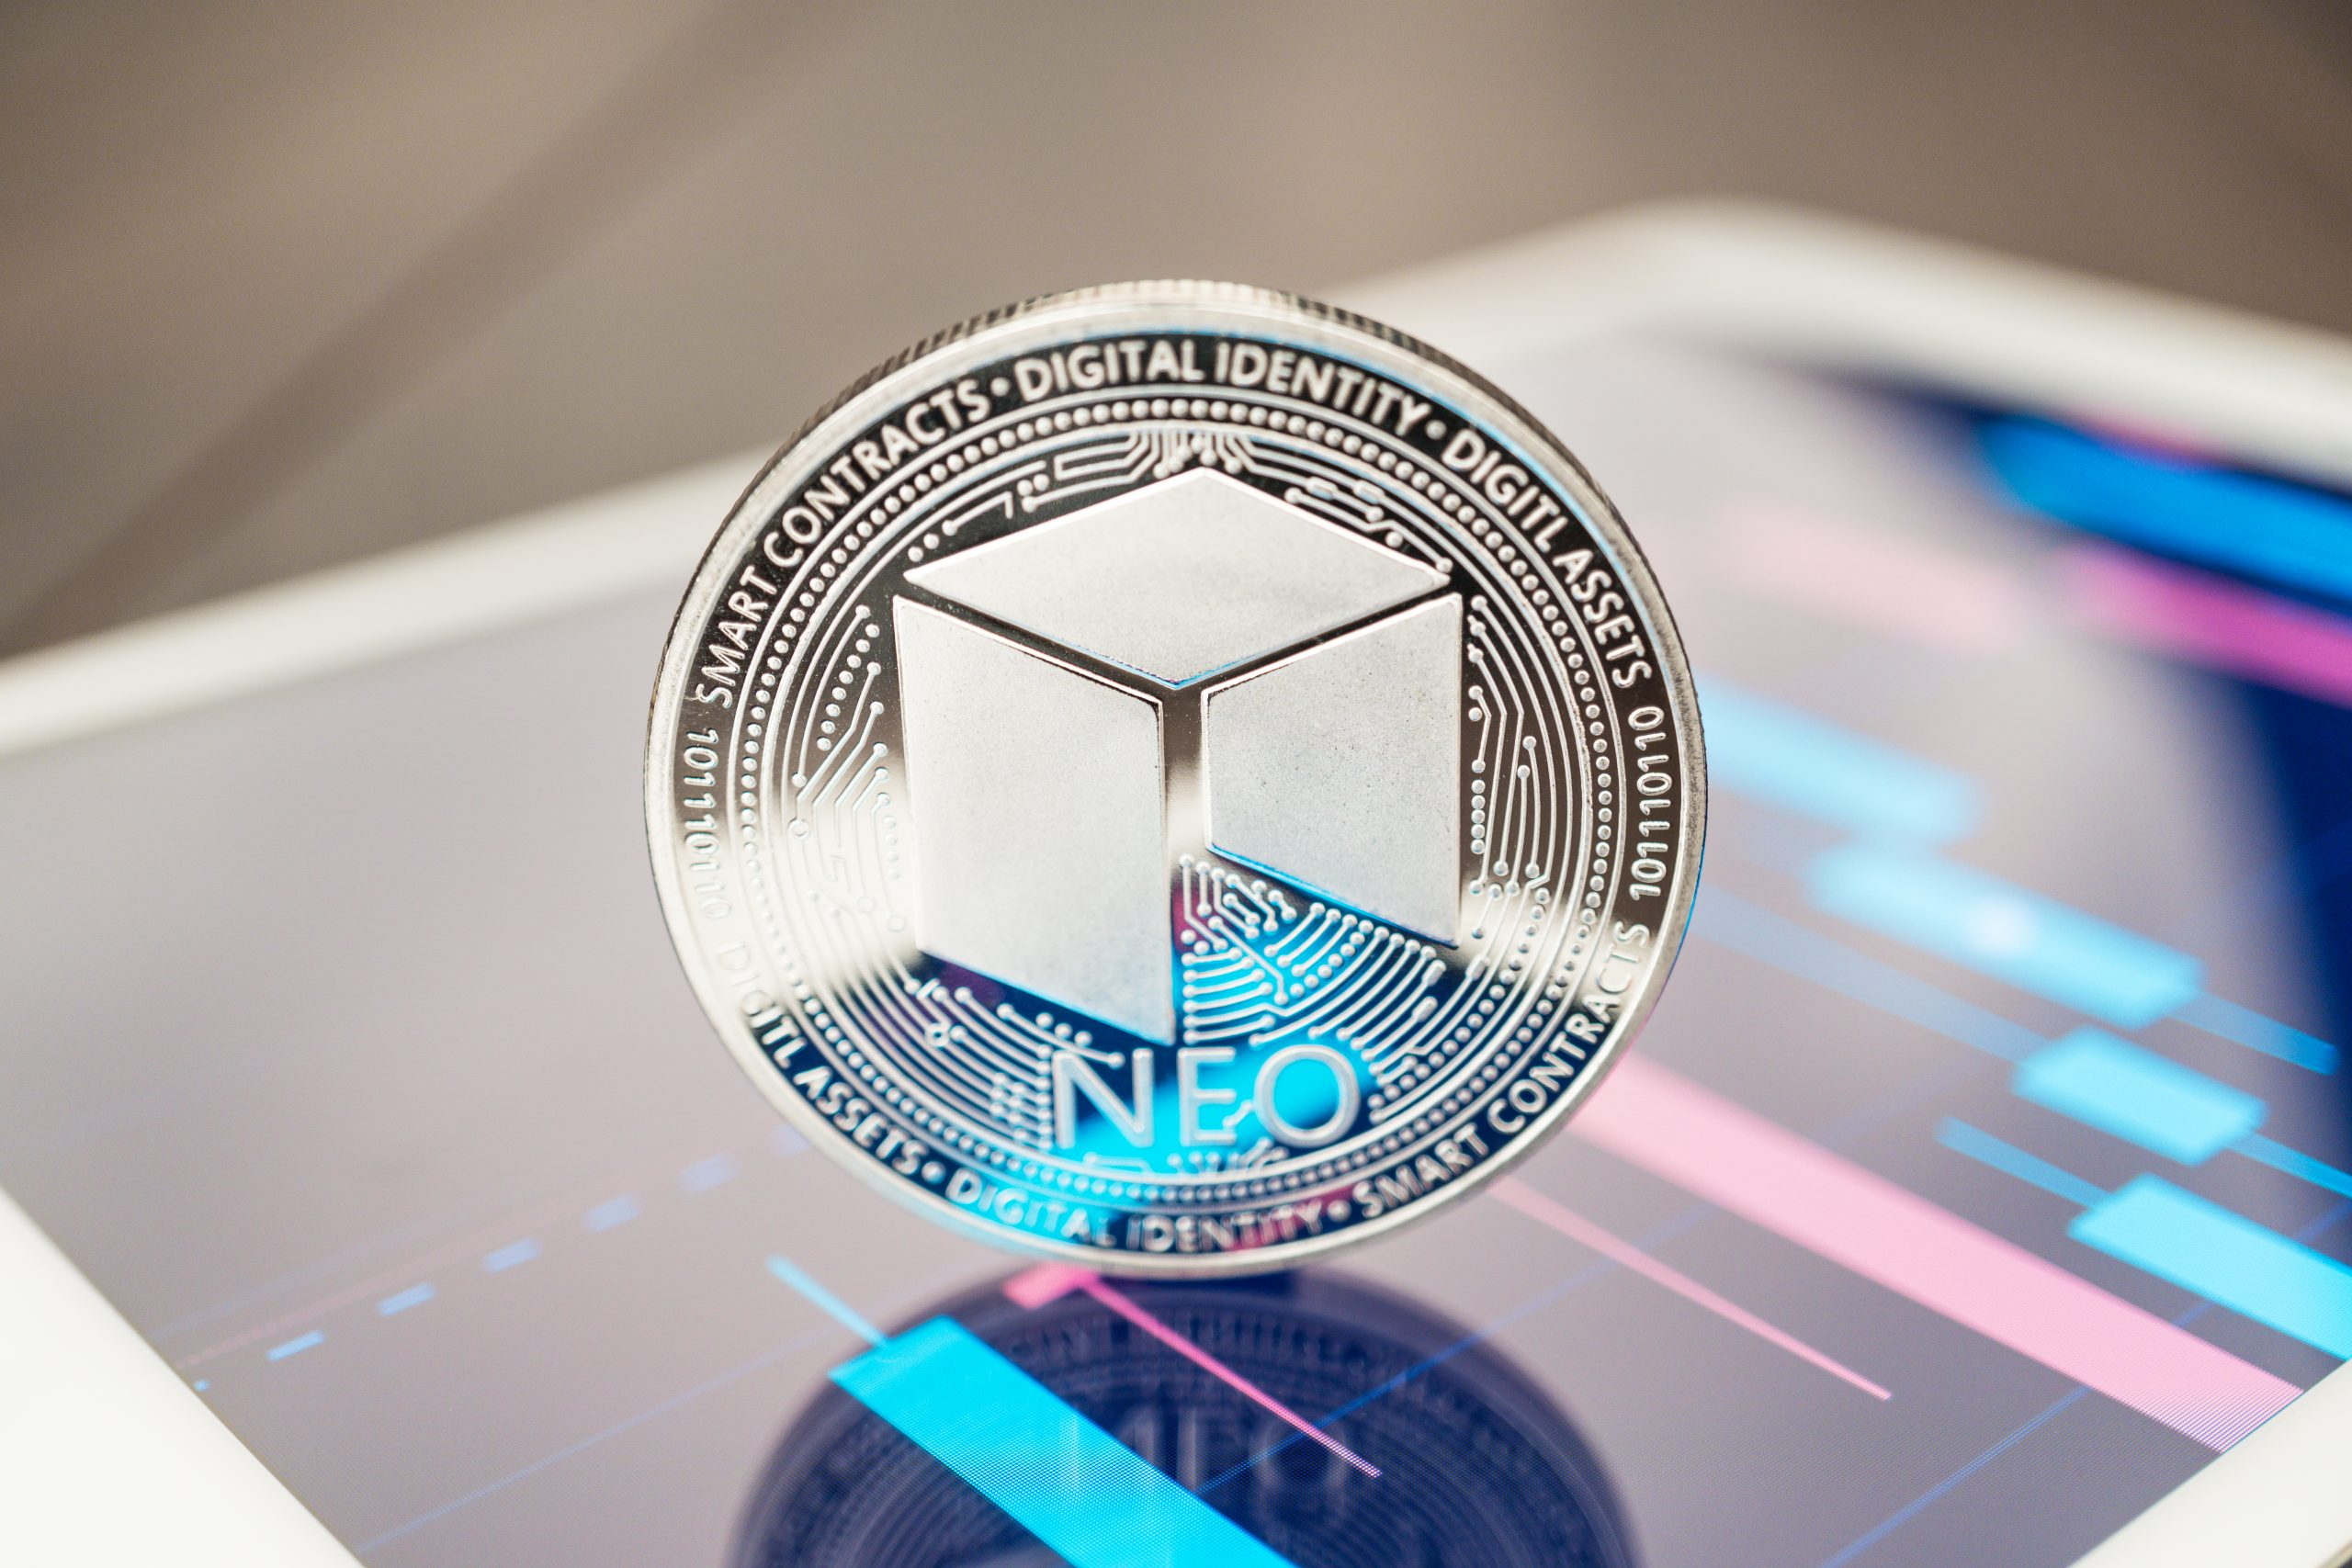 neo wallet android